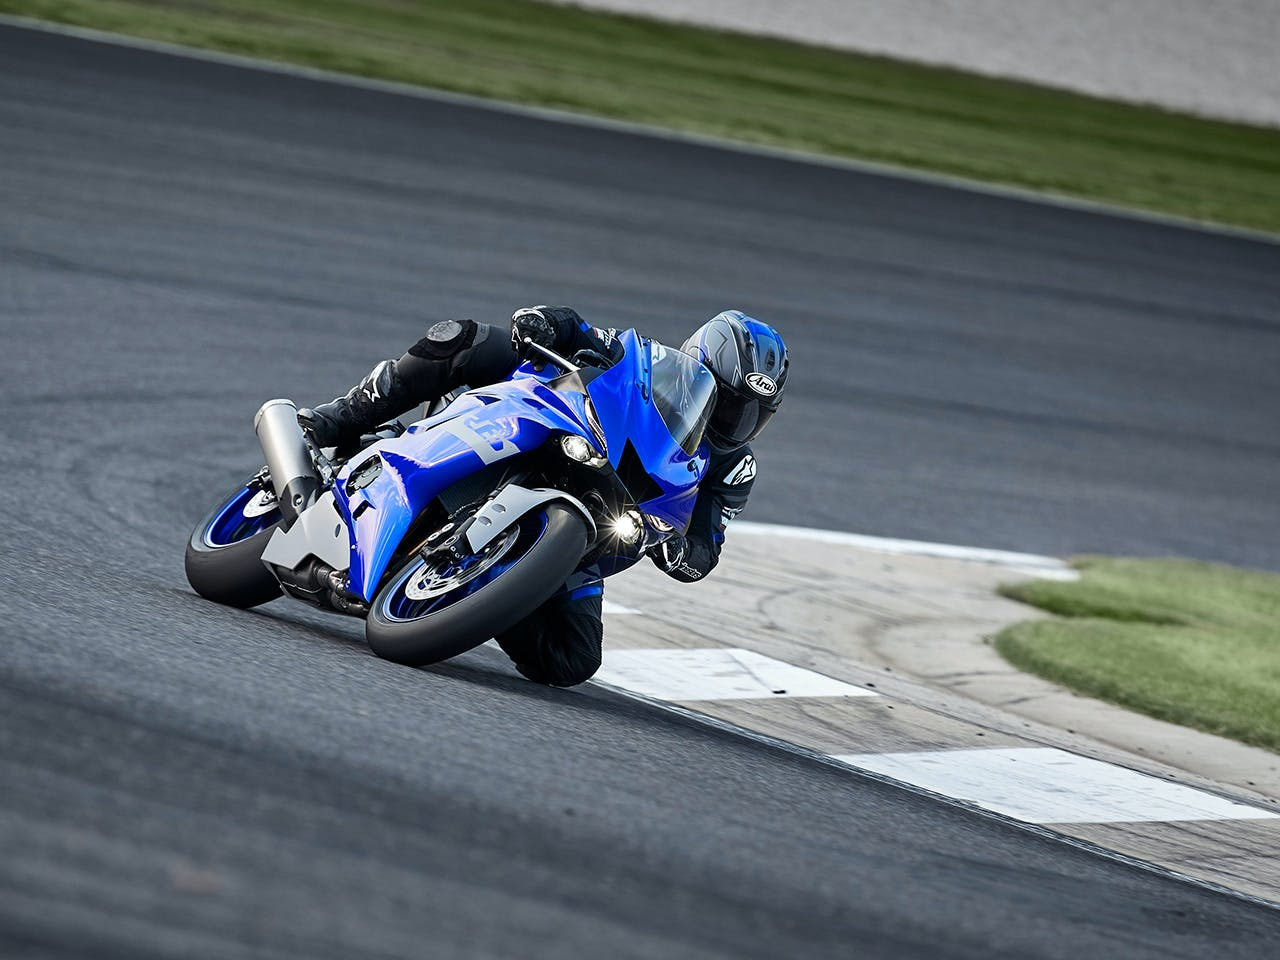 YAMAHA YZF-R6 motorcycle riding on the road